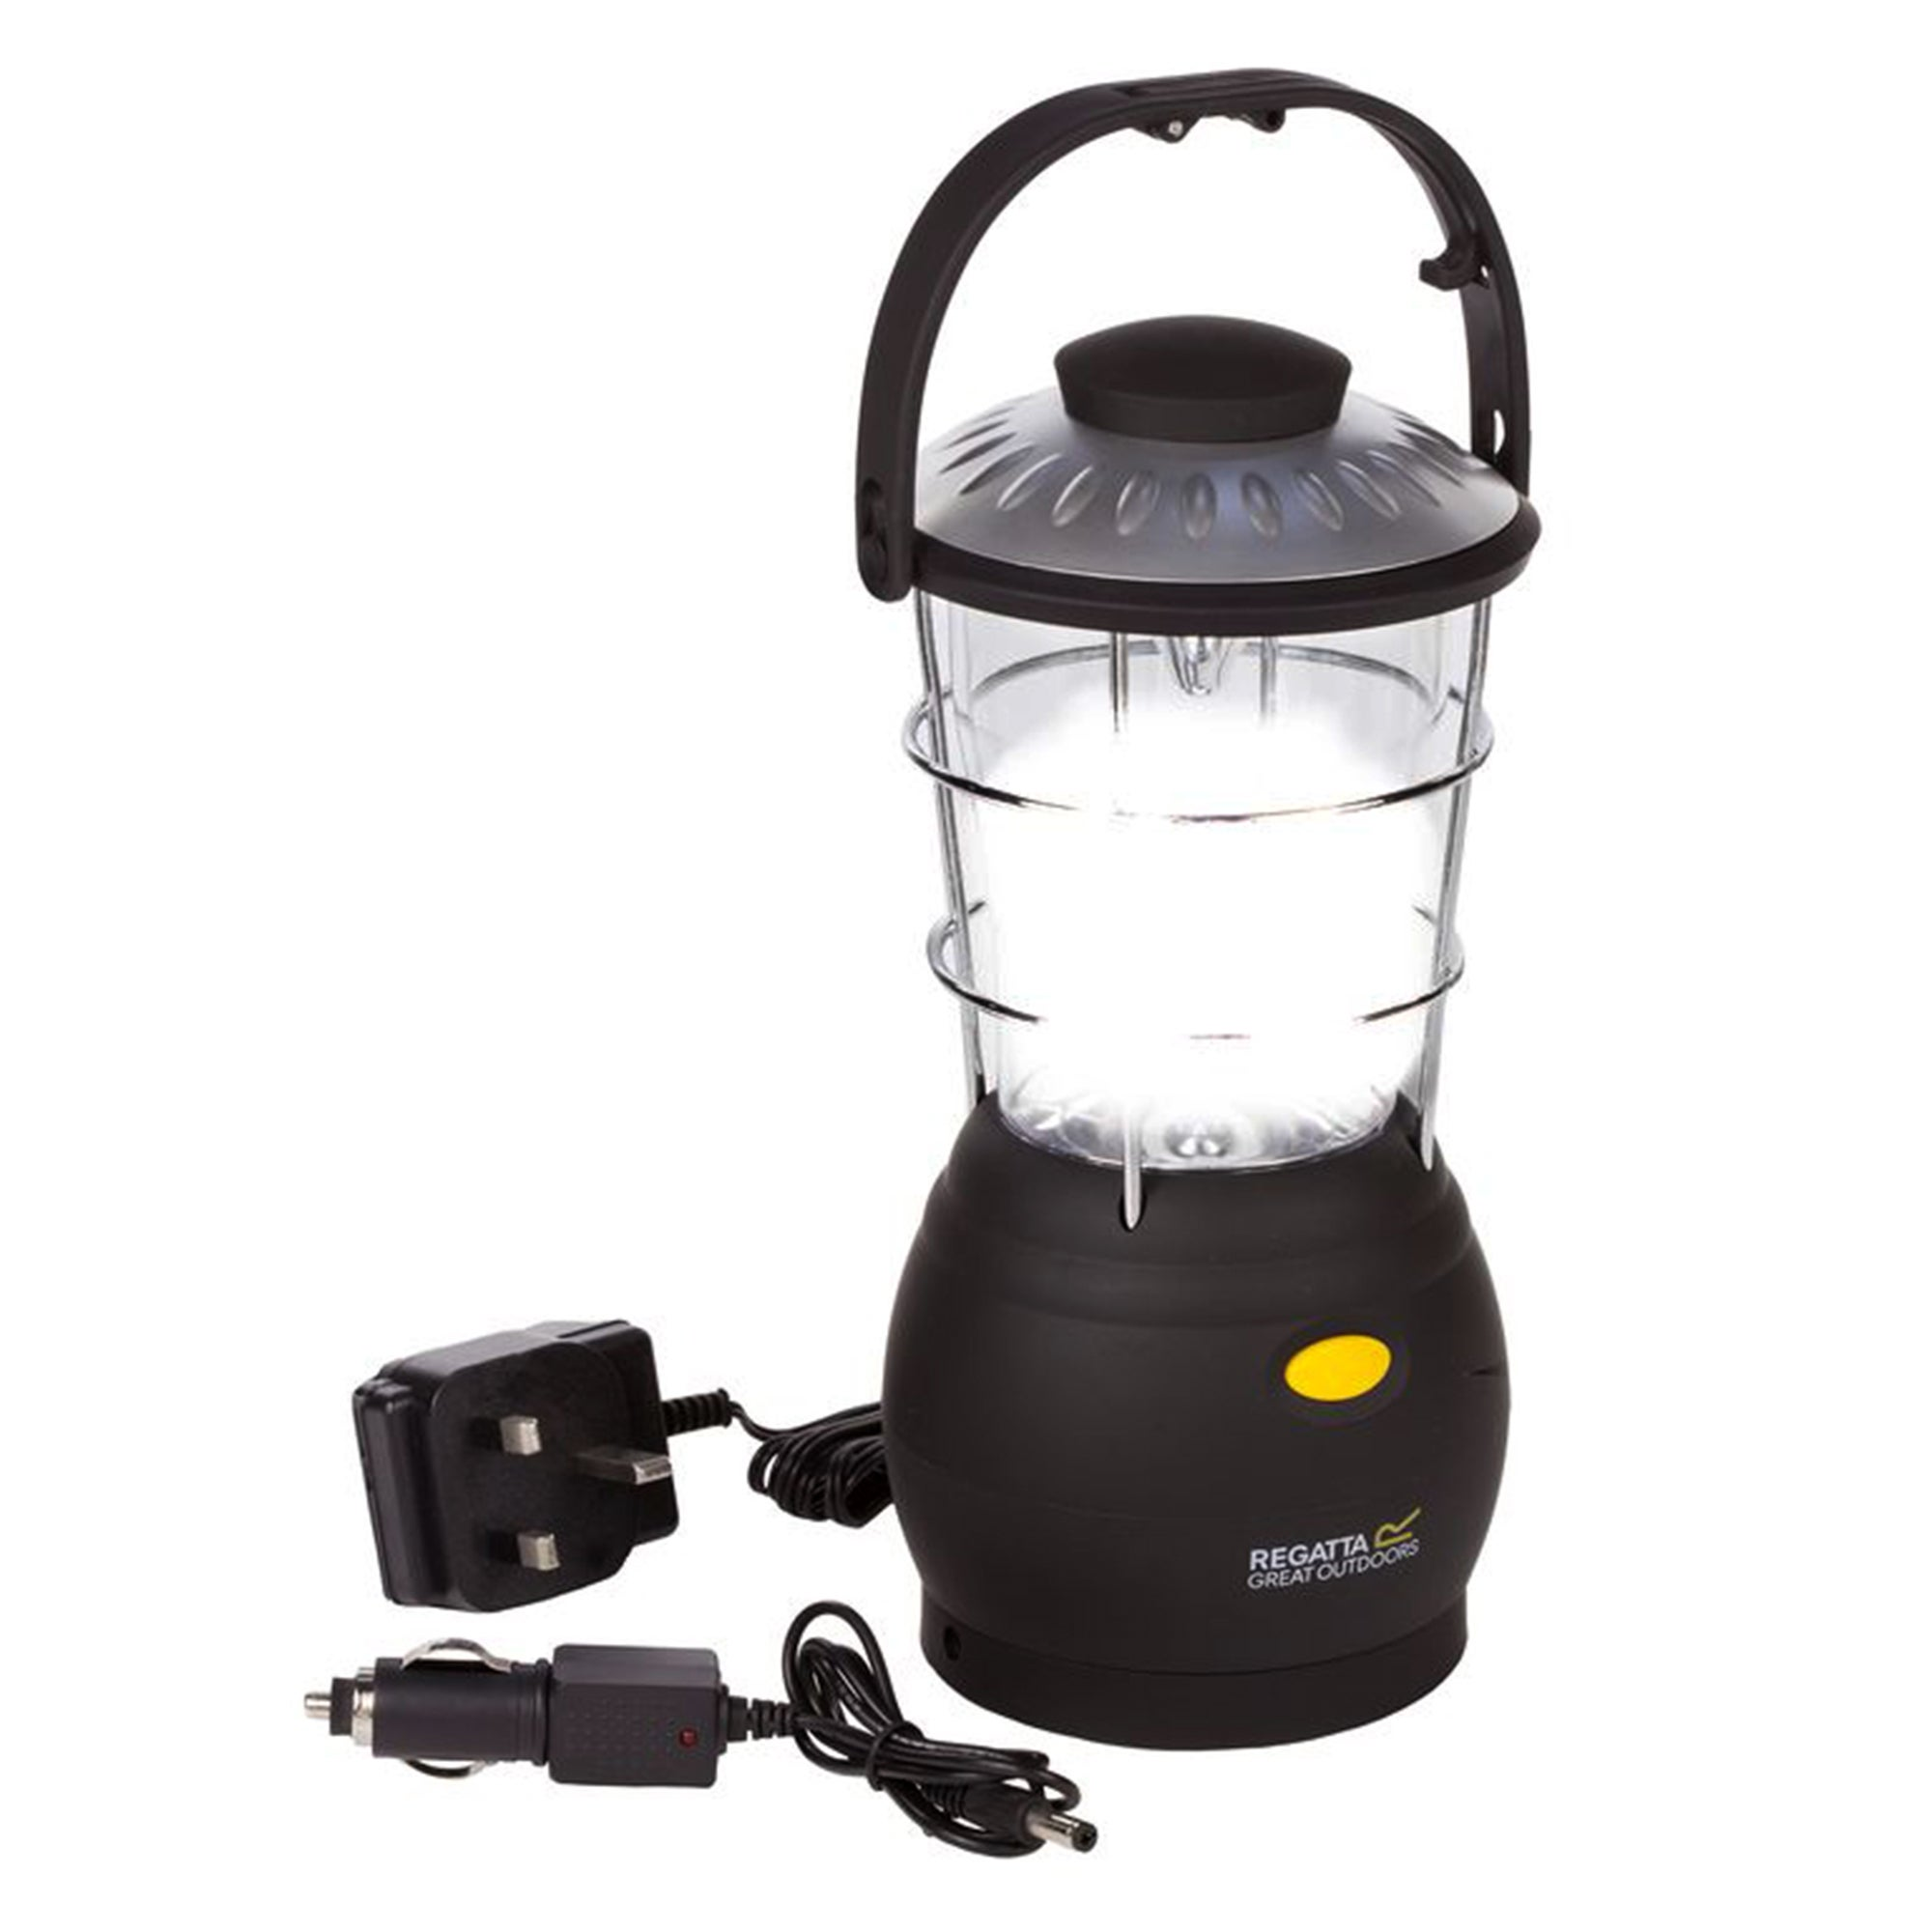 Photo of Regatta helia 12 dynamo lantern black